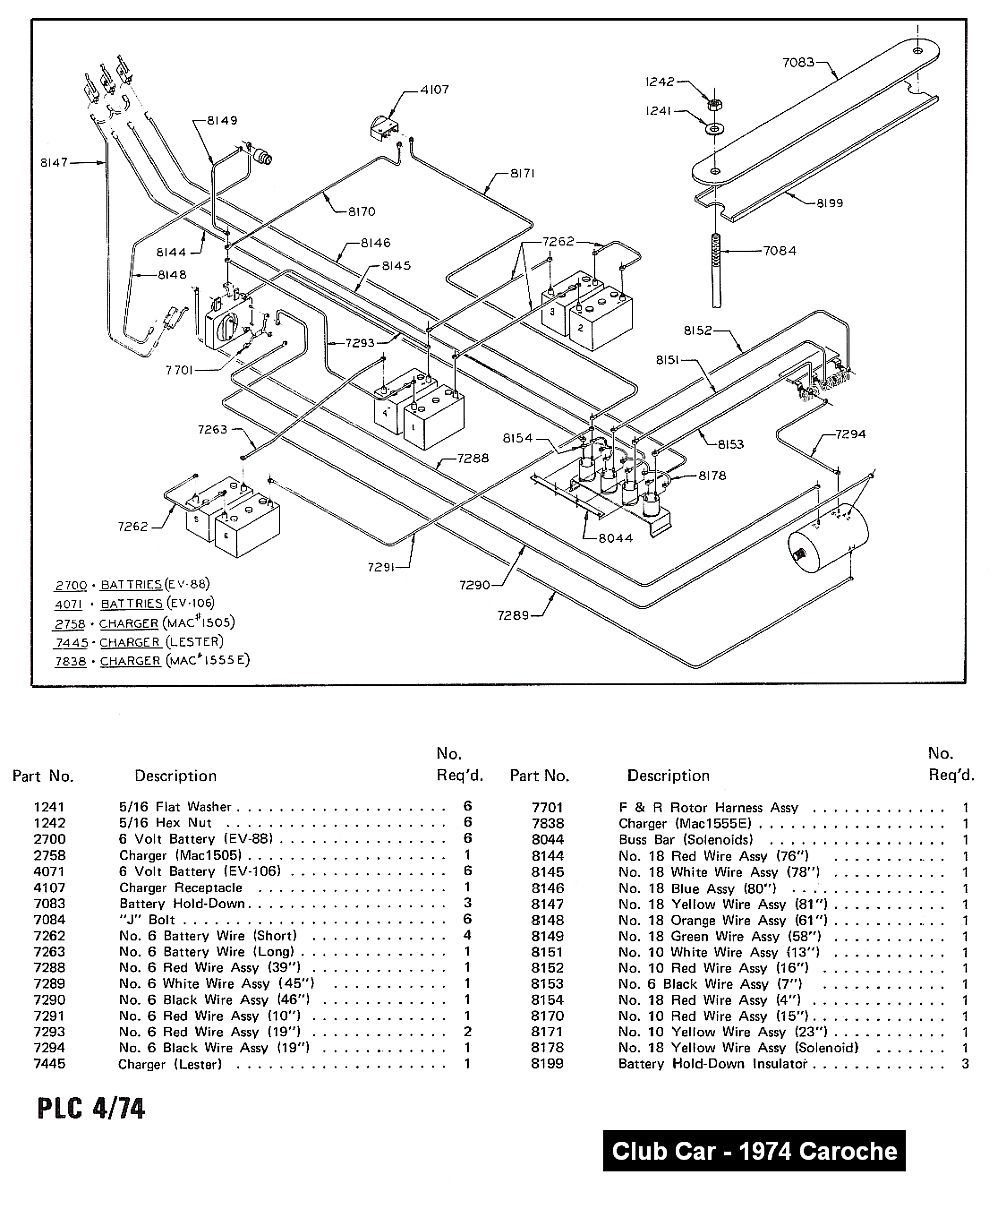 Car Drl Wiring Diagram likewise Discussion T7010 ds553088 furthermore 19ae51788188ece449990dbedcab5d2b moreover Engine Diagram For 2004 Ford Explorer likewise Showthread. on audi lights wiring diagram